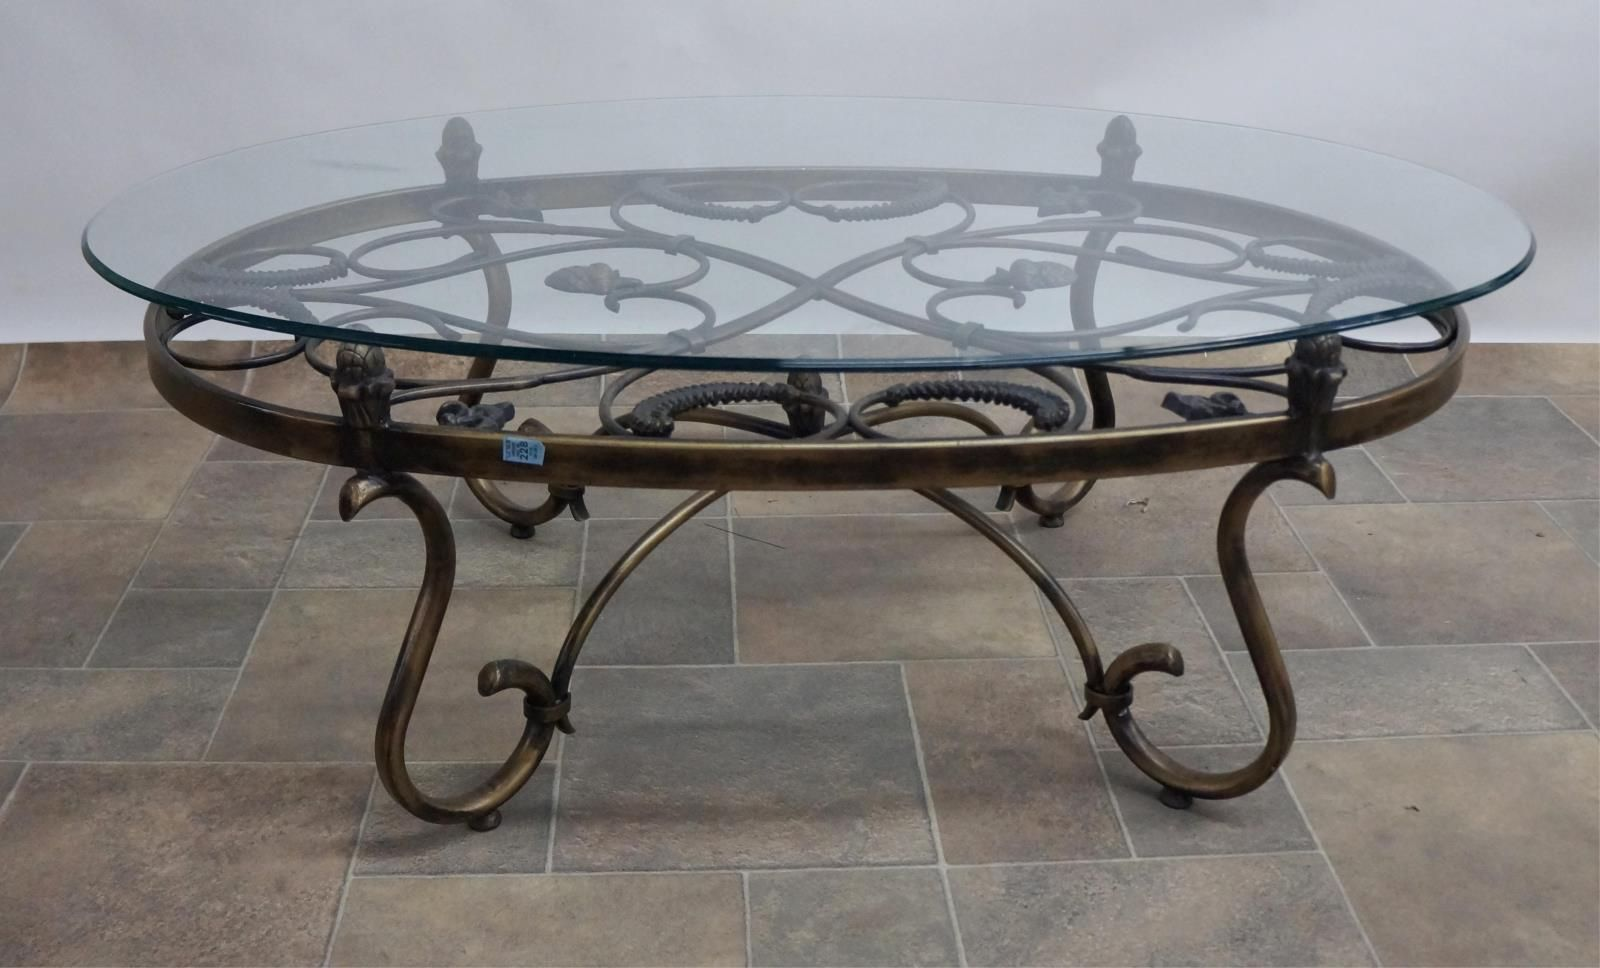 Glass Topped Coffee Tables Wrought Iron Iron Coffee Table Coffee Table Metal Coffee Table [ 788 x 1024 Pixel ]